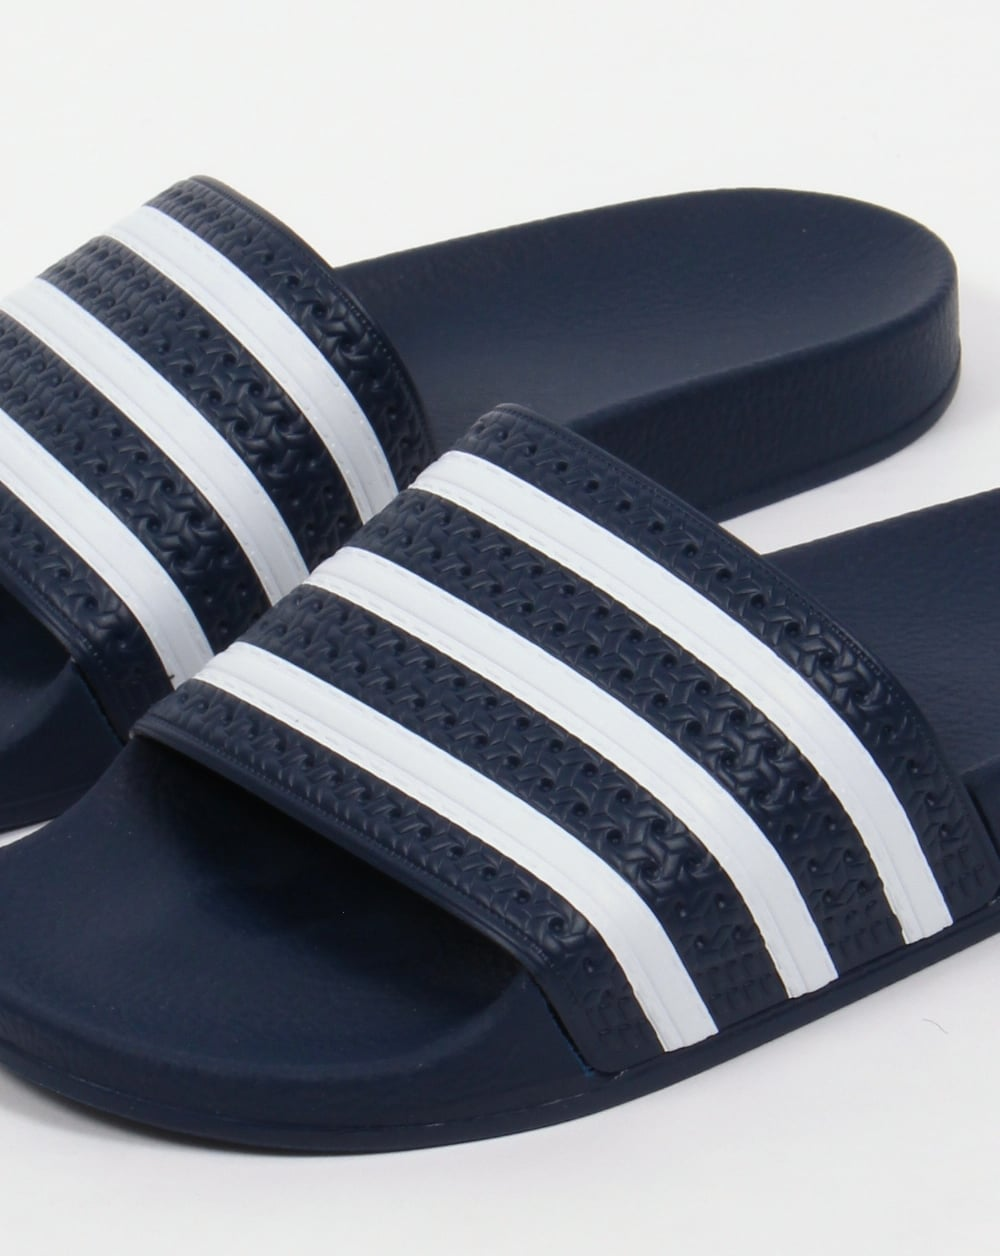 Adidas Sneakers Adilette Sliders Navy White